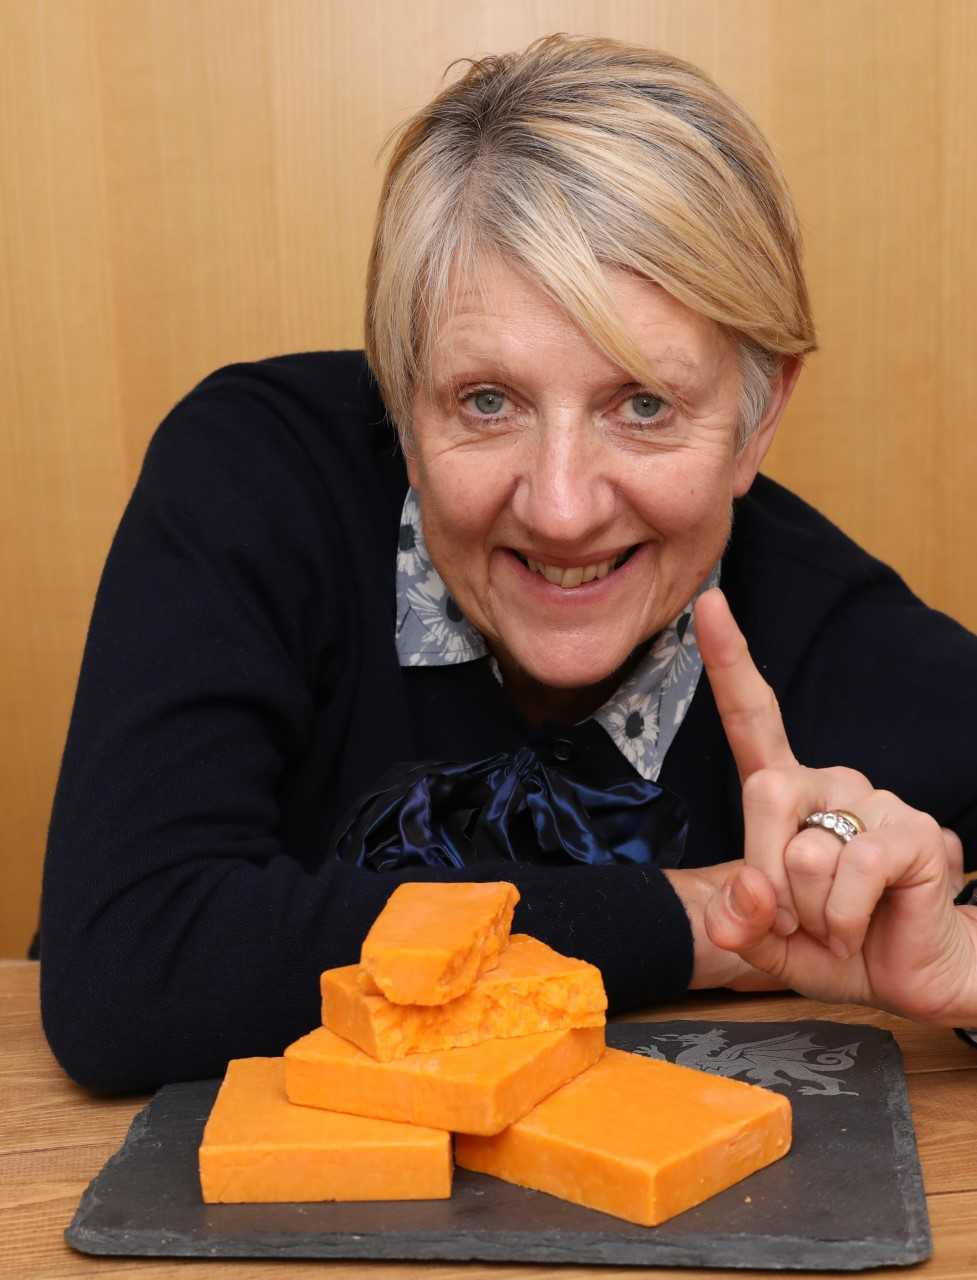 New product development manager Linda Lewis Williams with the award winning Red Leicester cheese